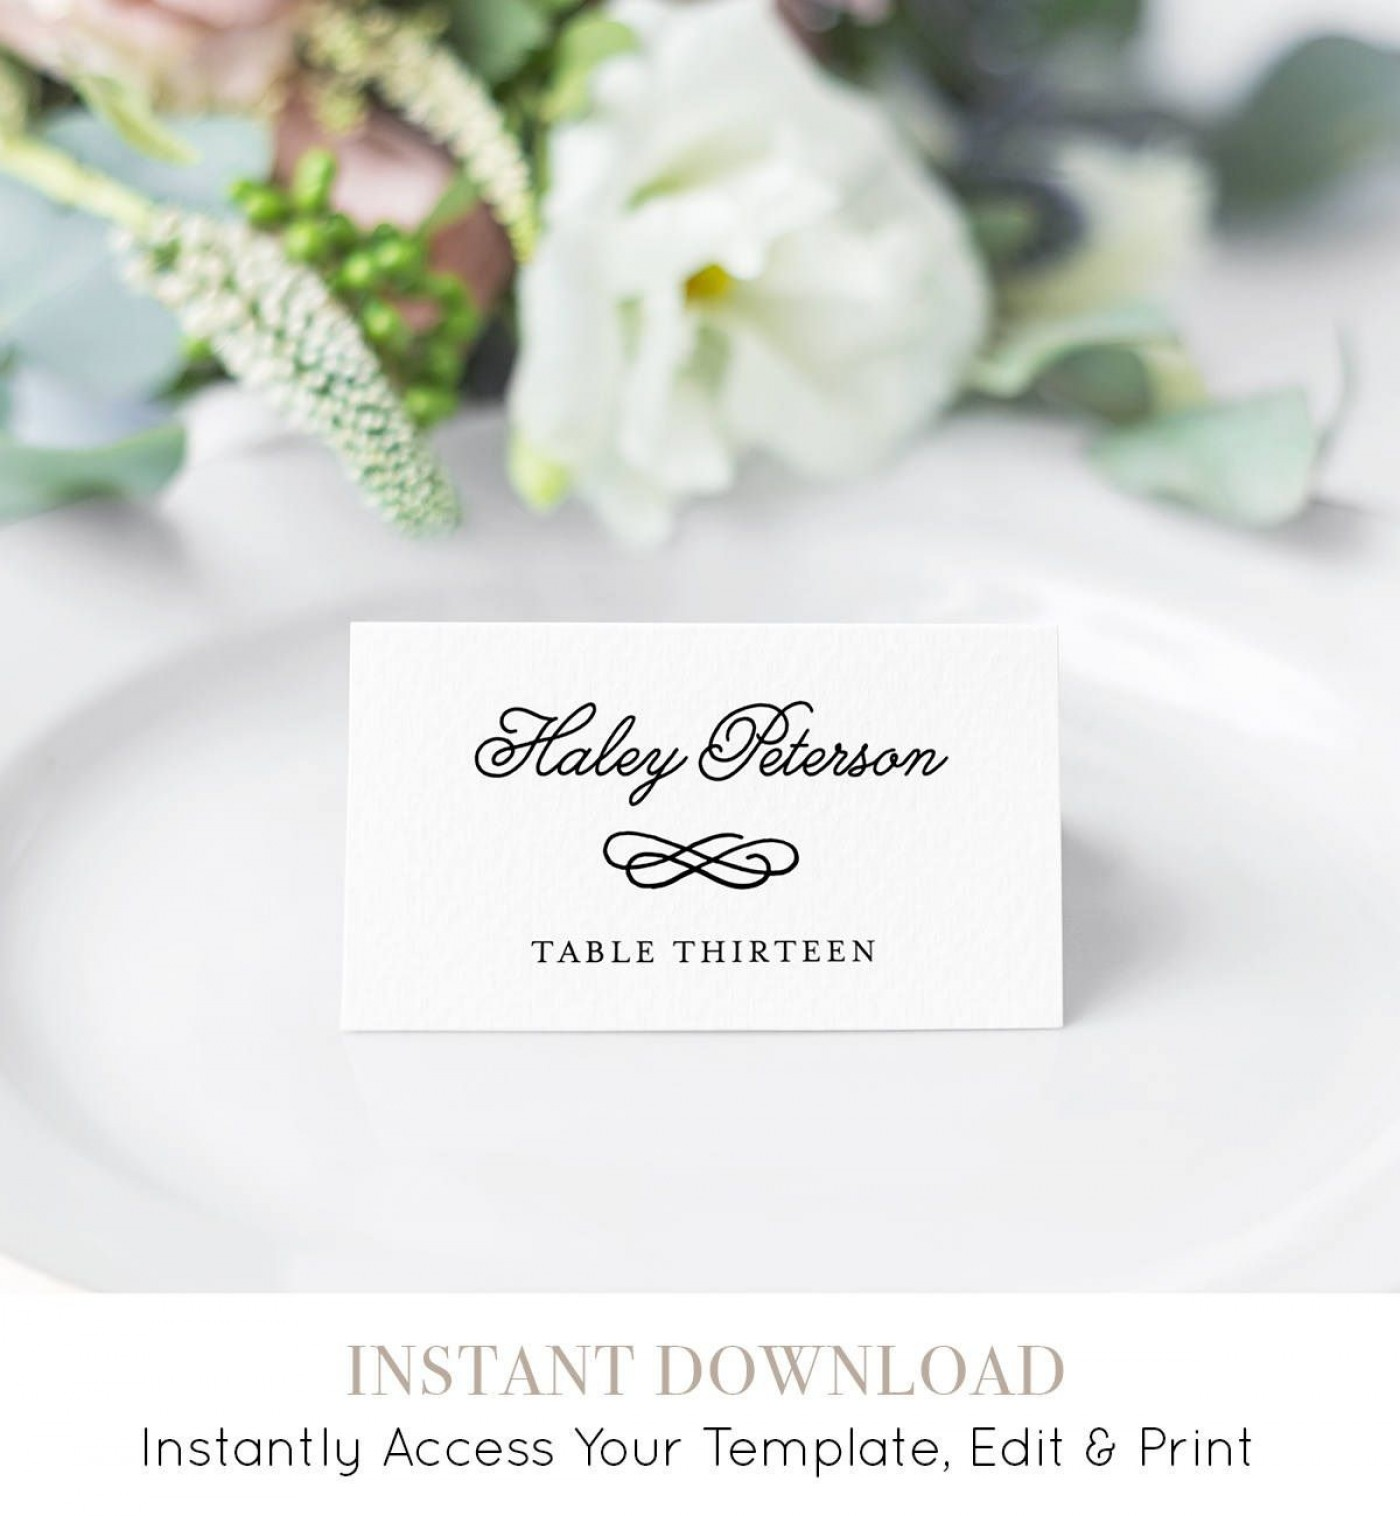 006 Impressive Wedding Name Card Template Example  Free Download Design Sticker Format1400